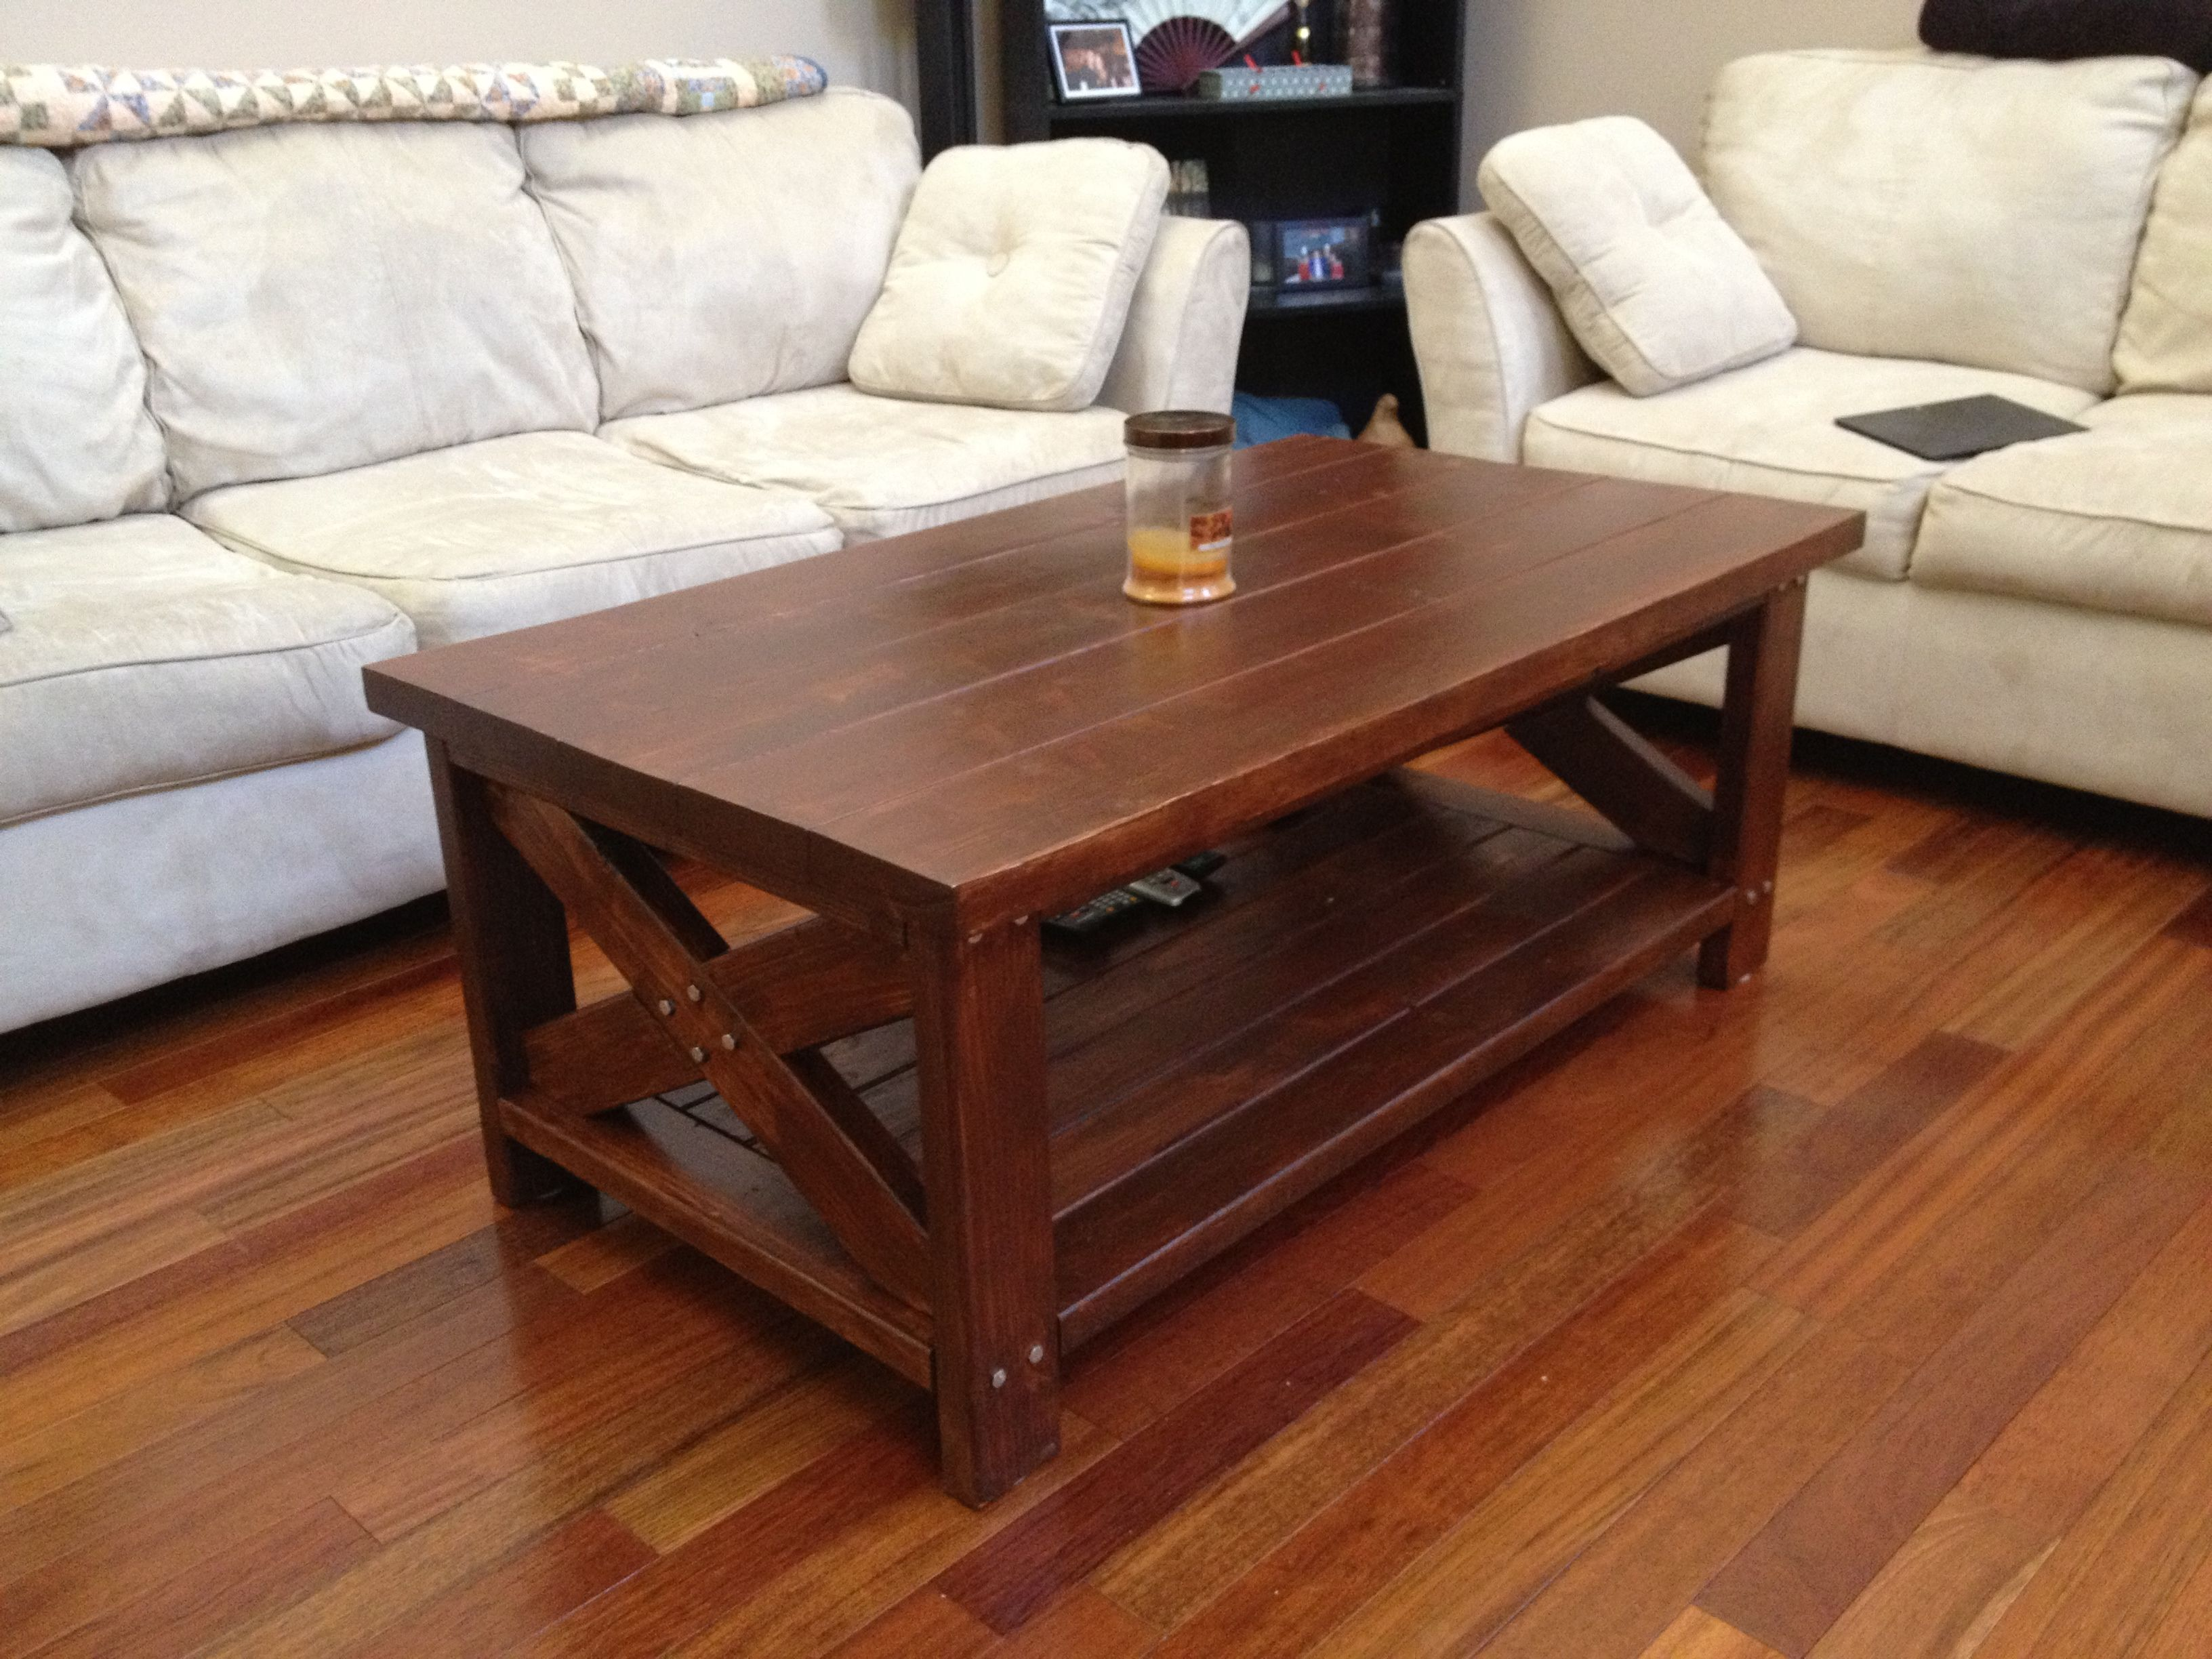 Rustic farm style coffee table made from 2x4 39 s and 2x6 39 s for Furniture table design examples